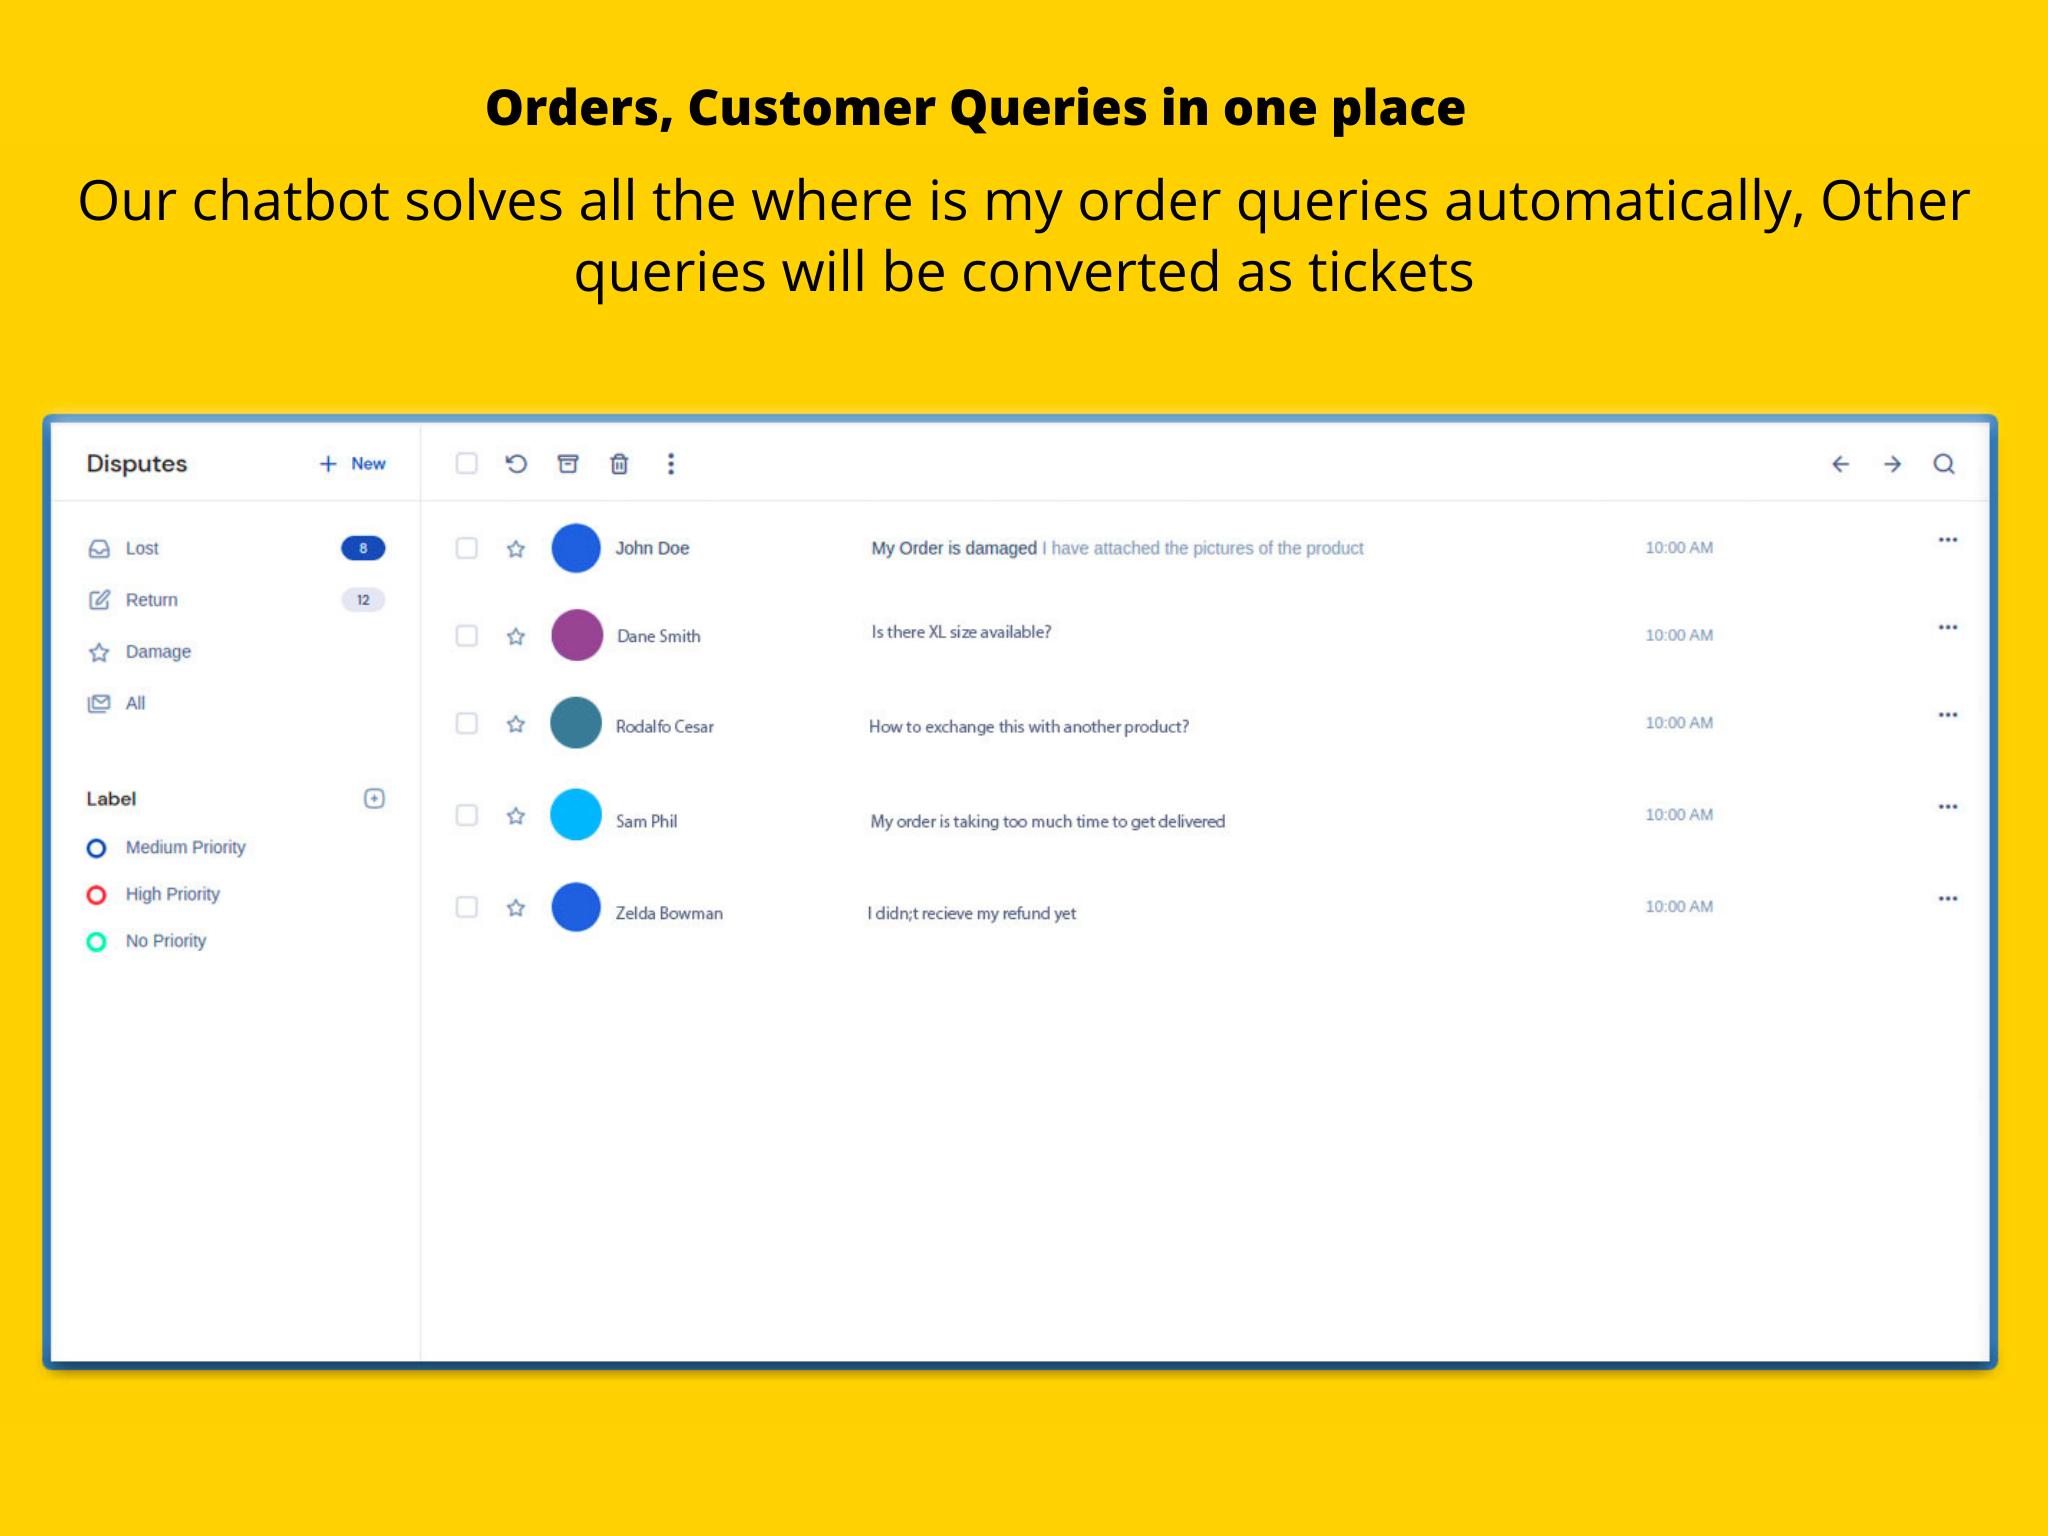 After-checkout customer queries in one place